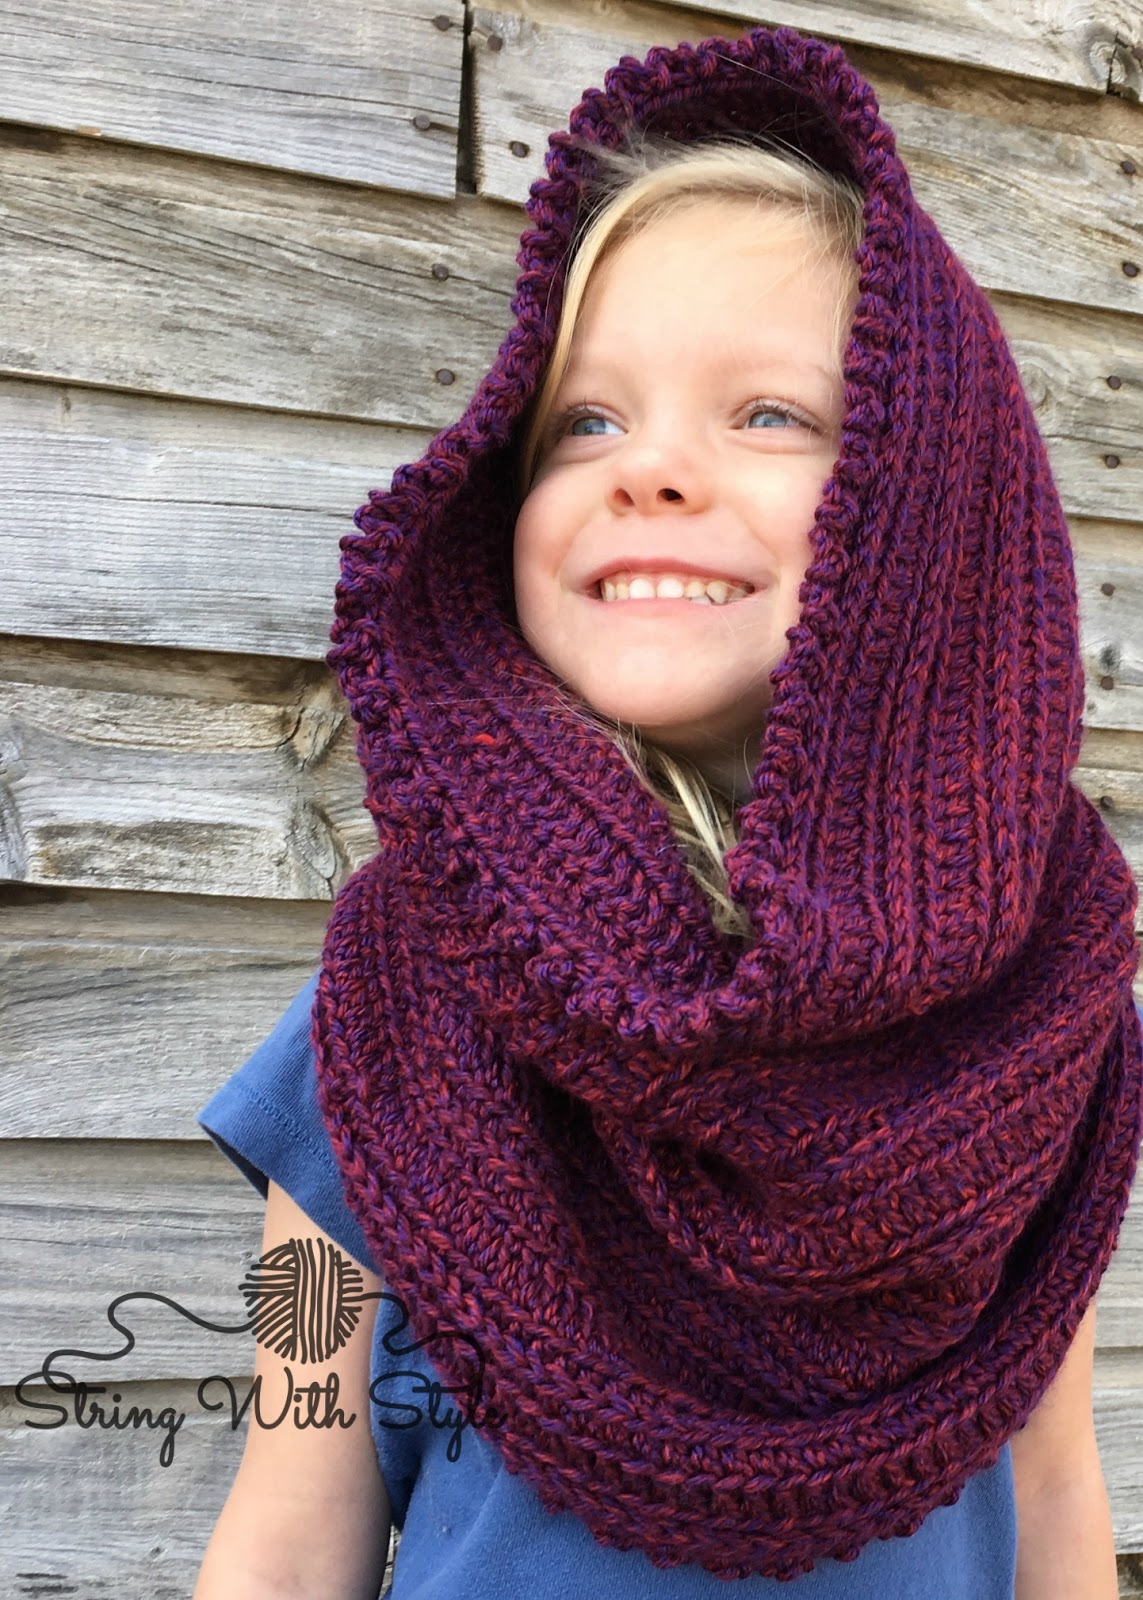 String With Style: Sleigh Ride Hooded Infinity Scarf